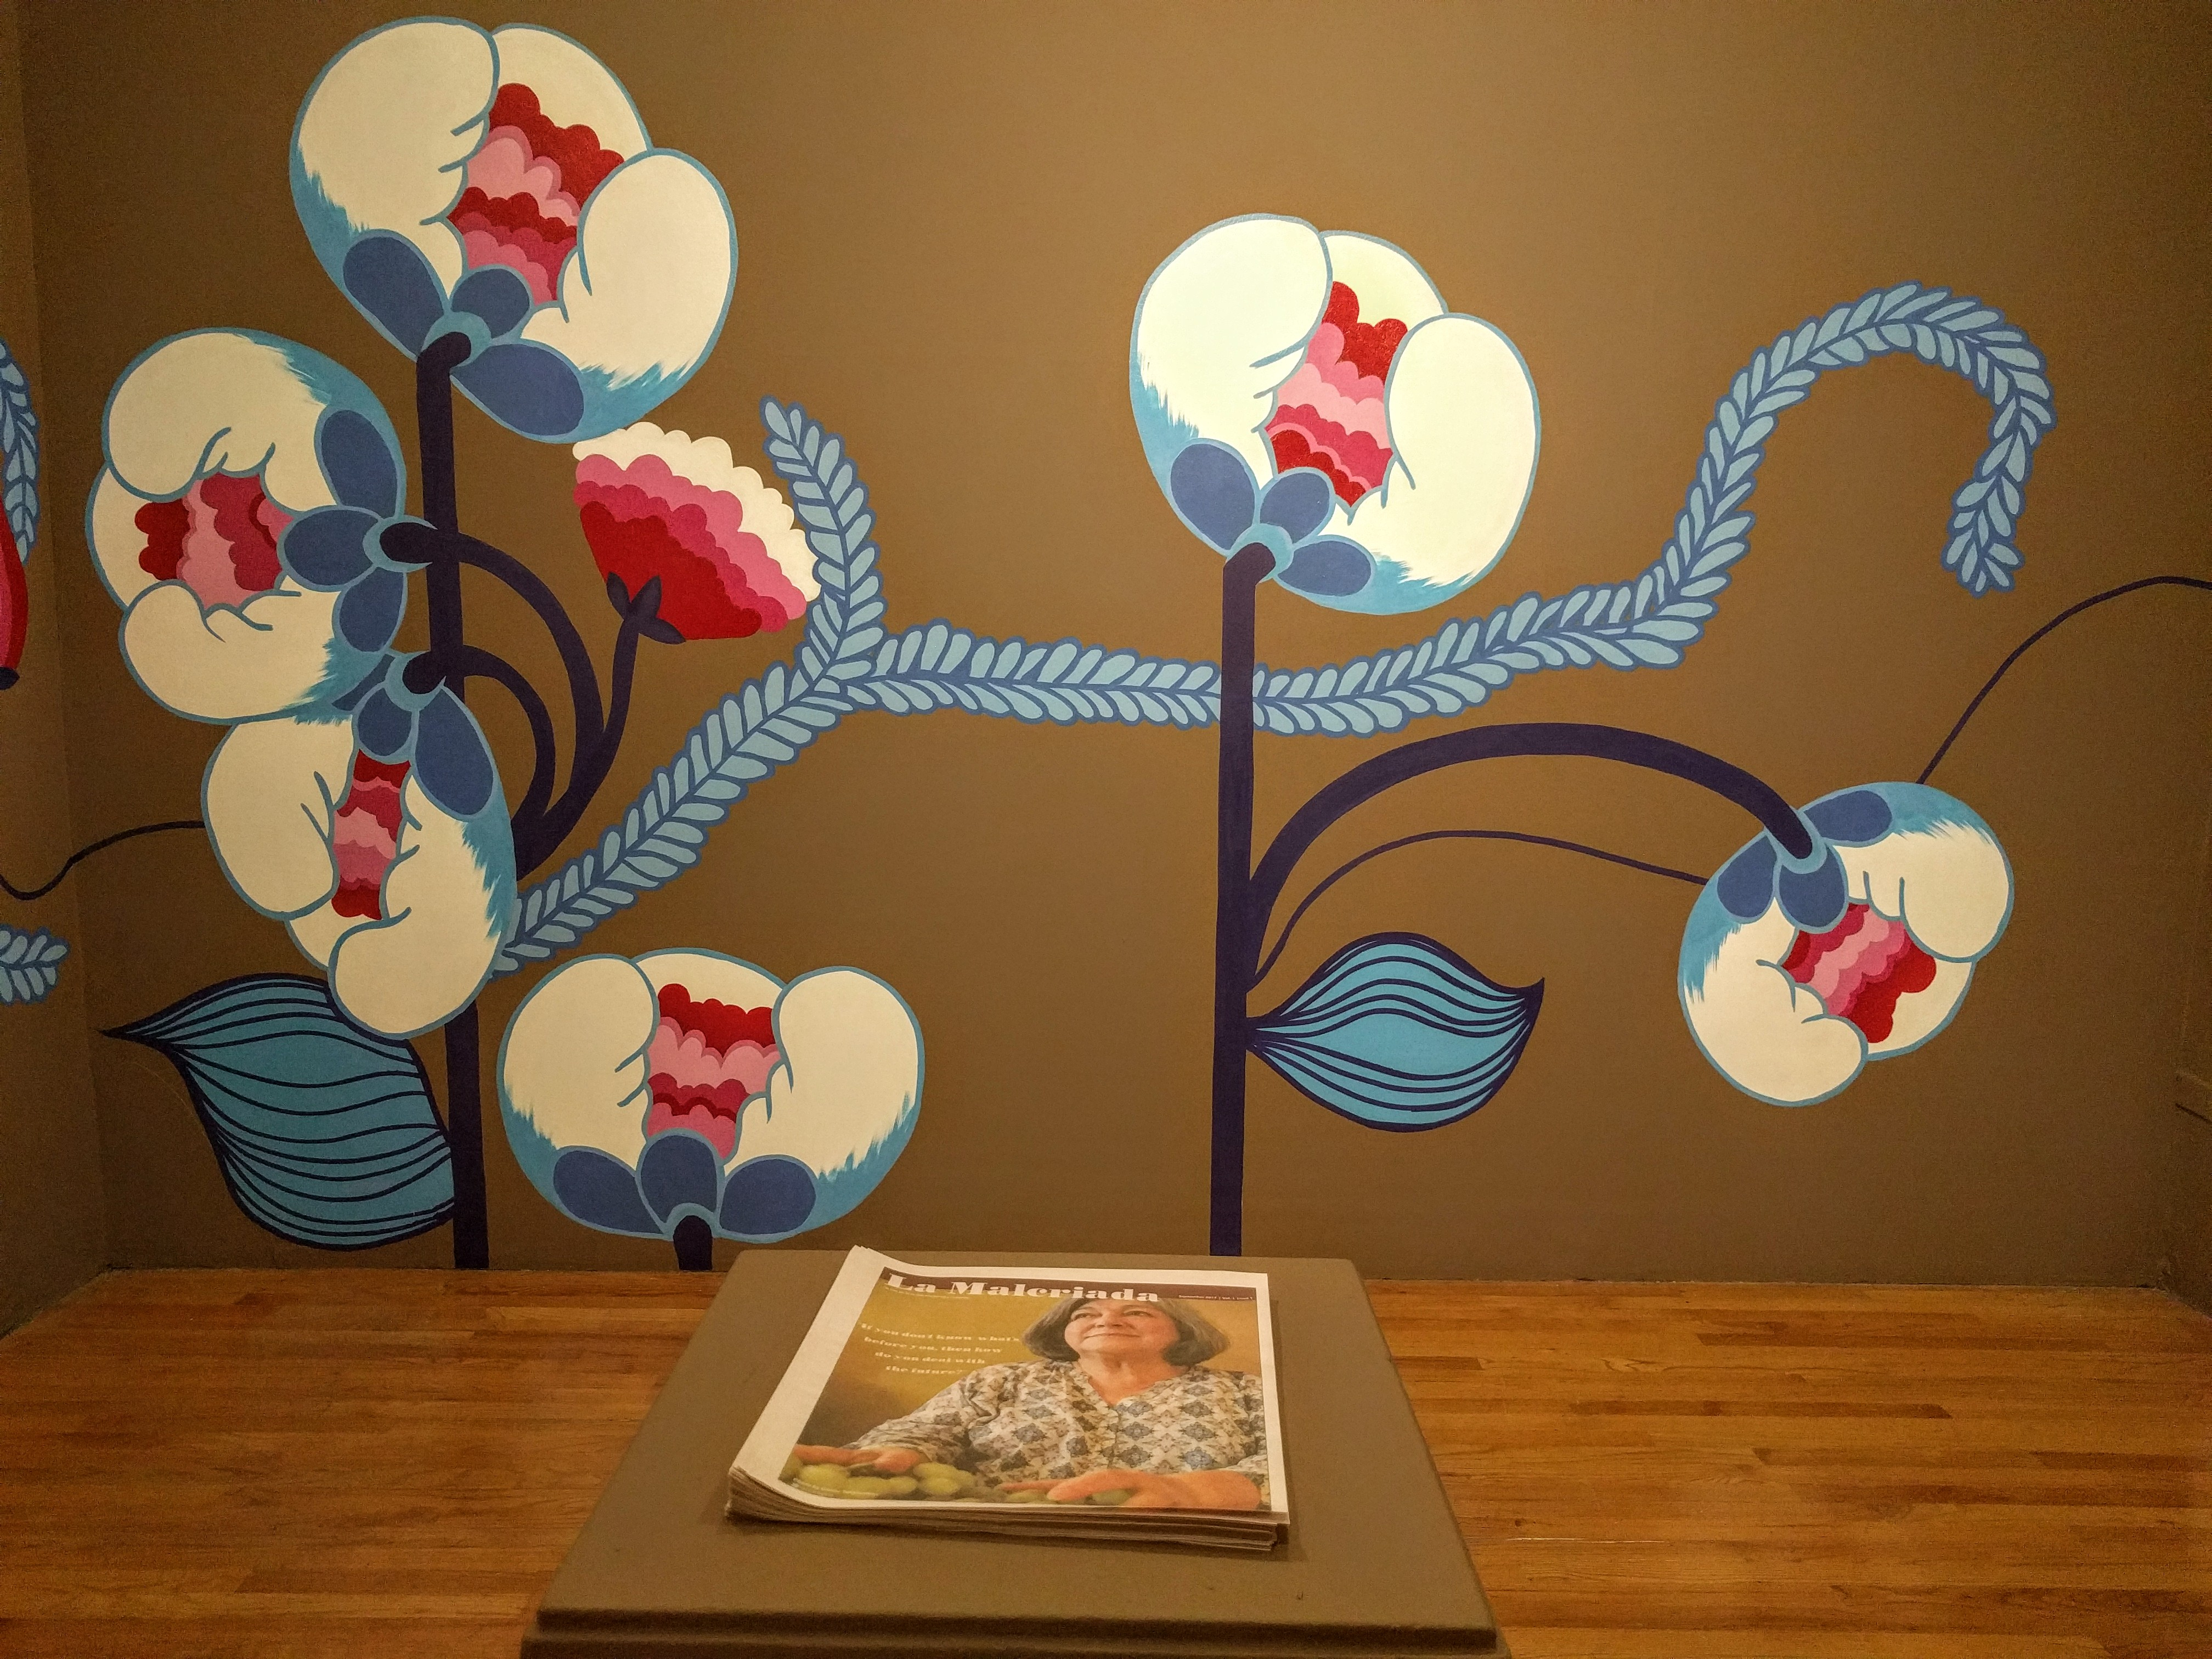 Mural of white, blue and pink flowers on a brown wall with a newsletter on a pedestal